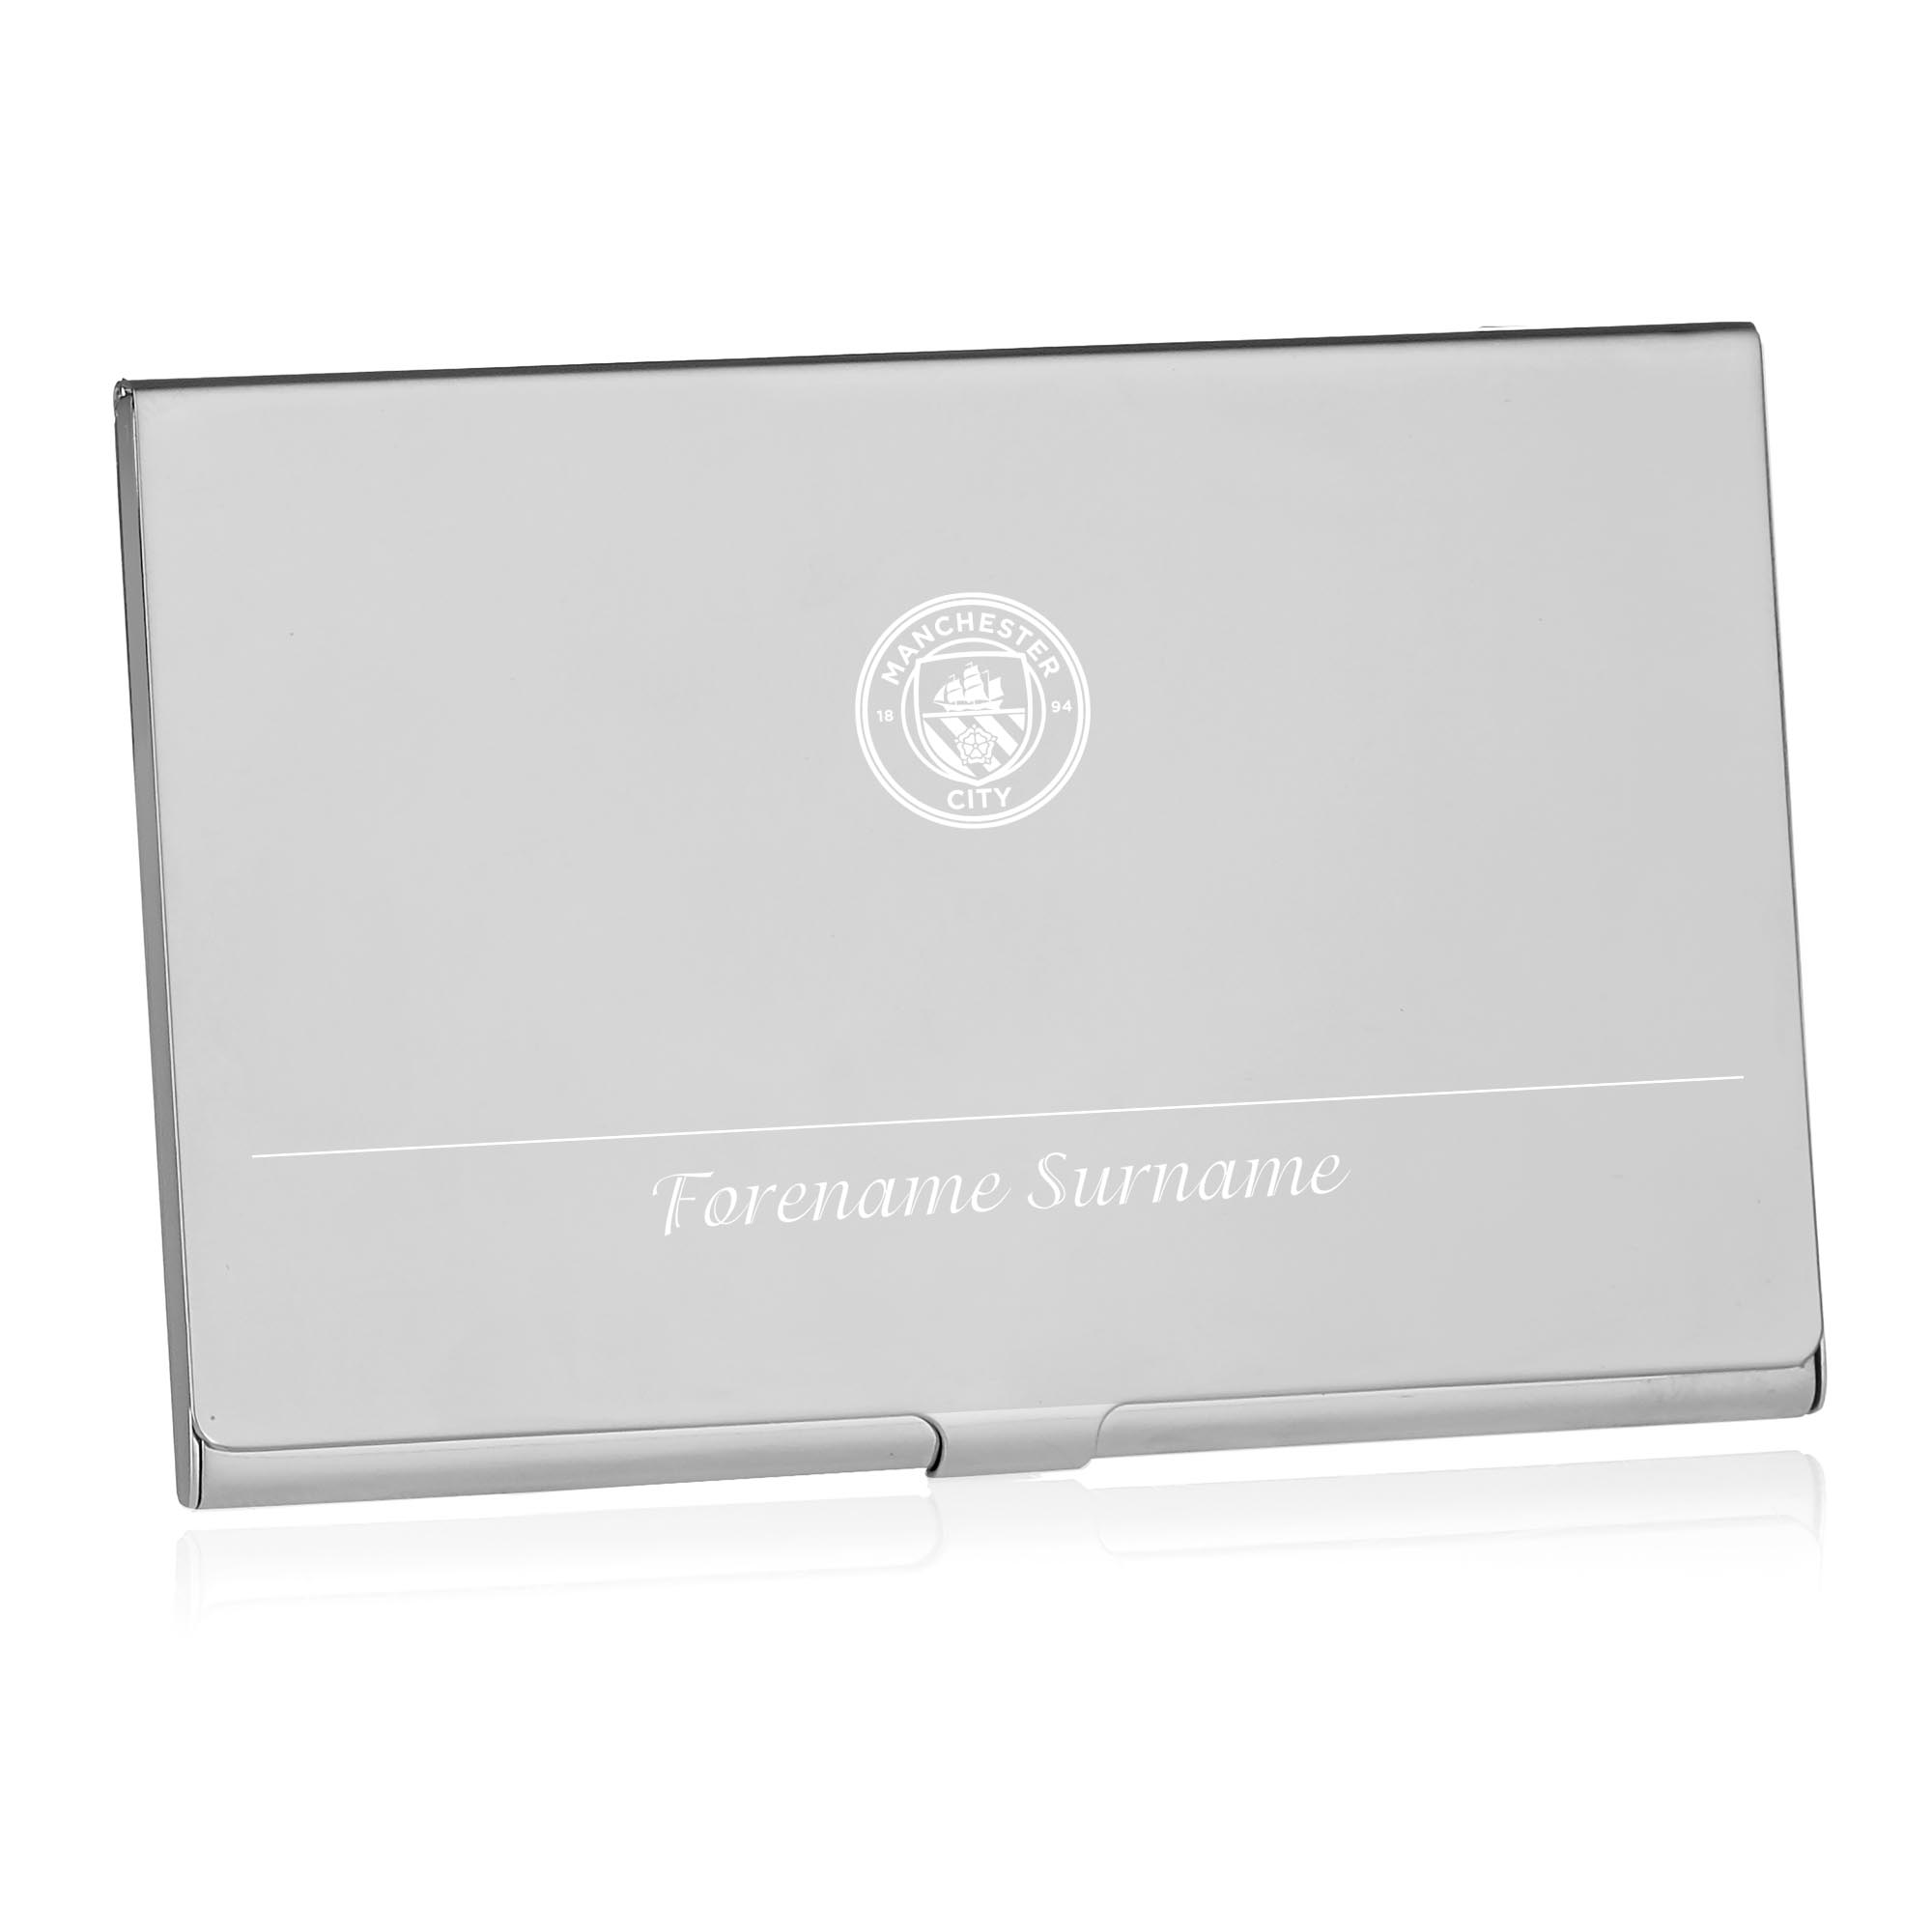 Manchester City FC Executive Business Card Holder